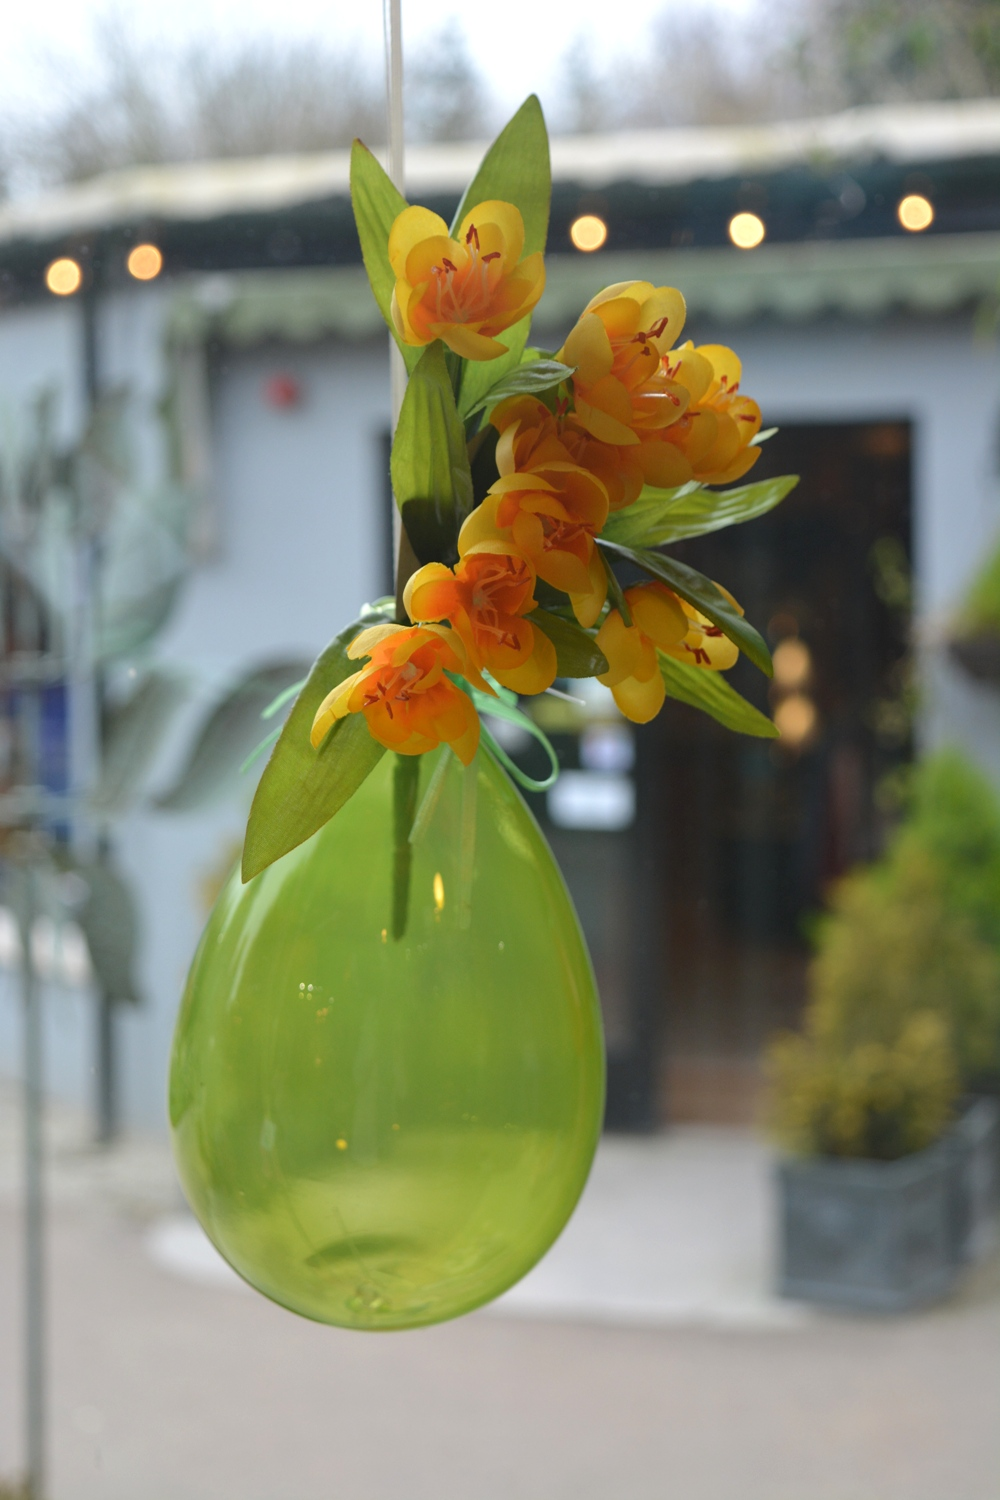 Green Hanging Ornamental Glass Vase/Balloon  €13.90